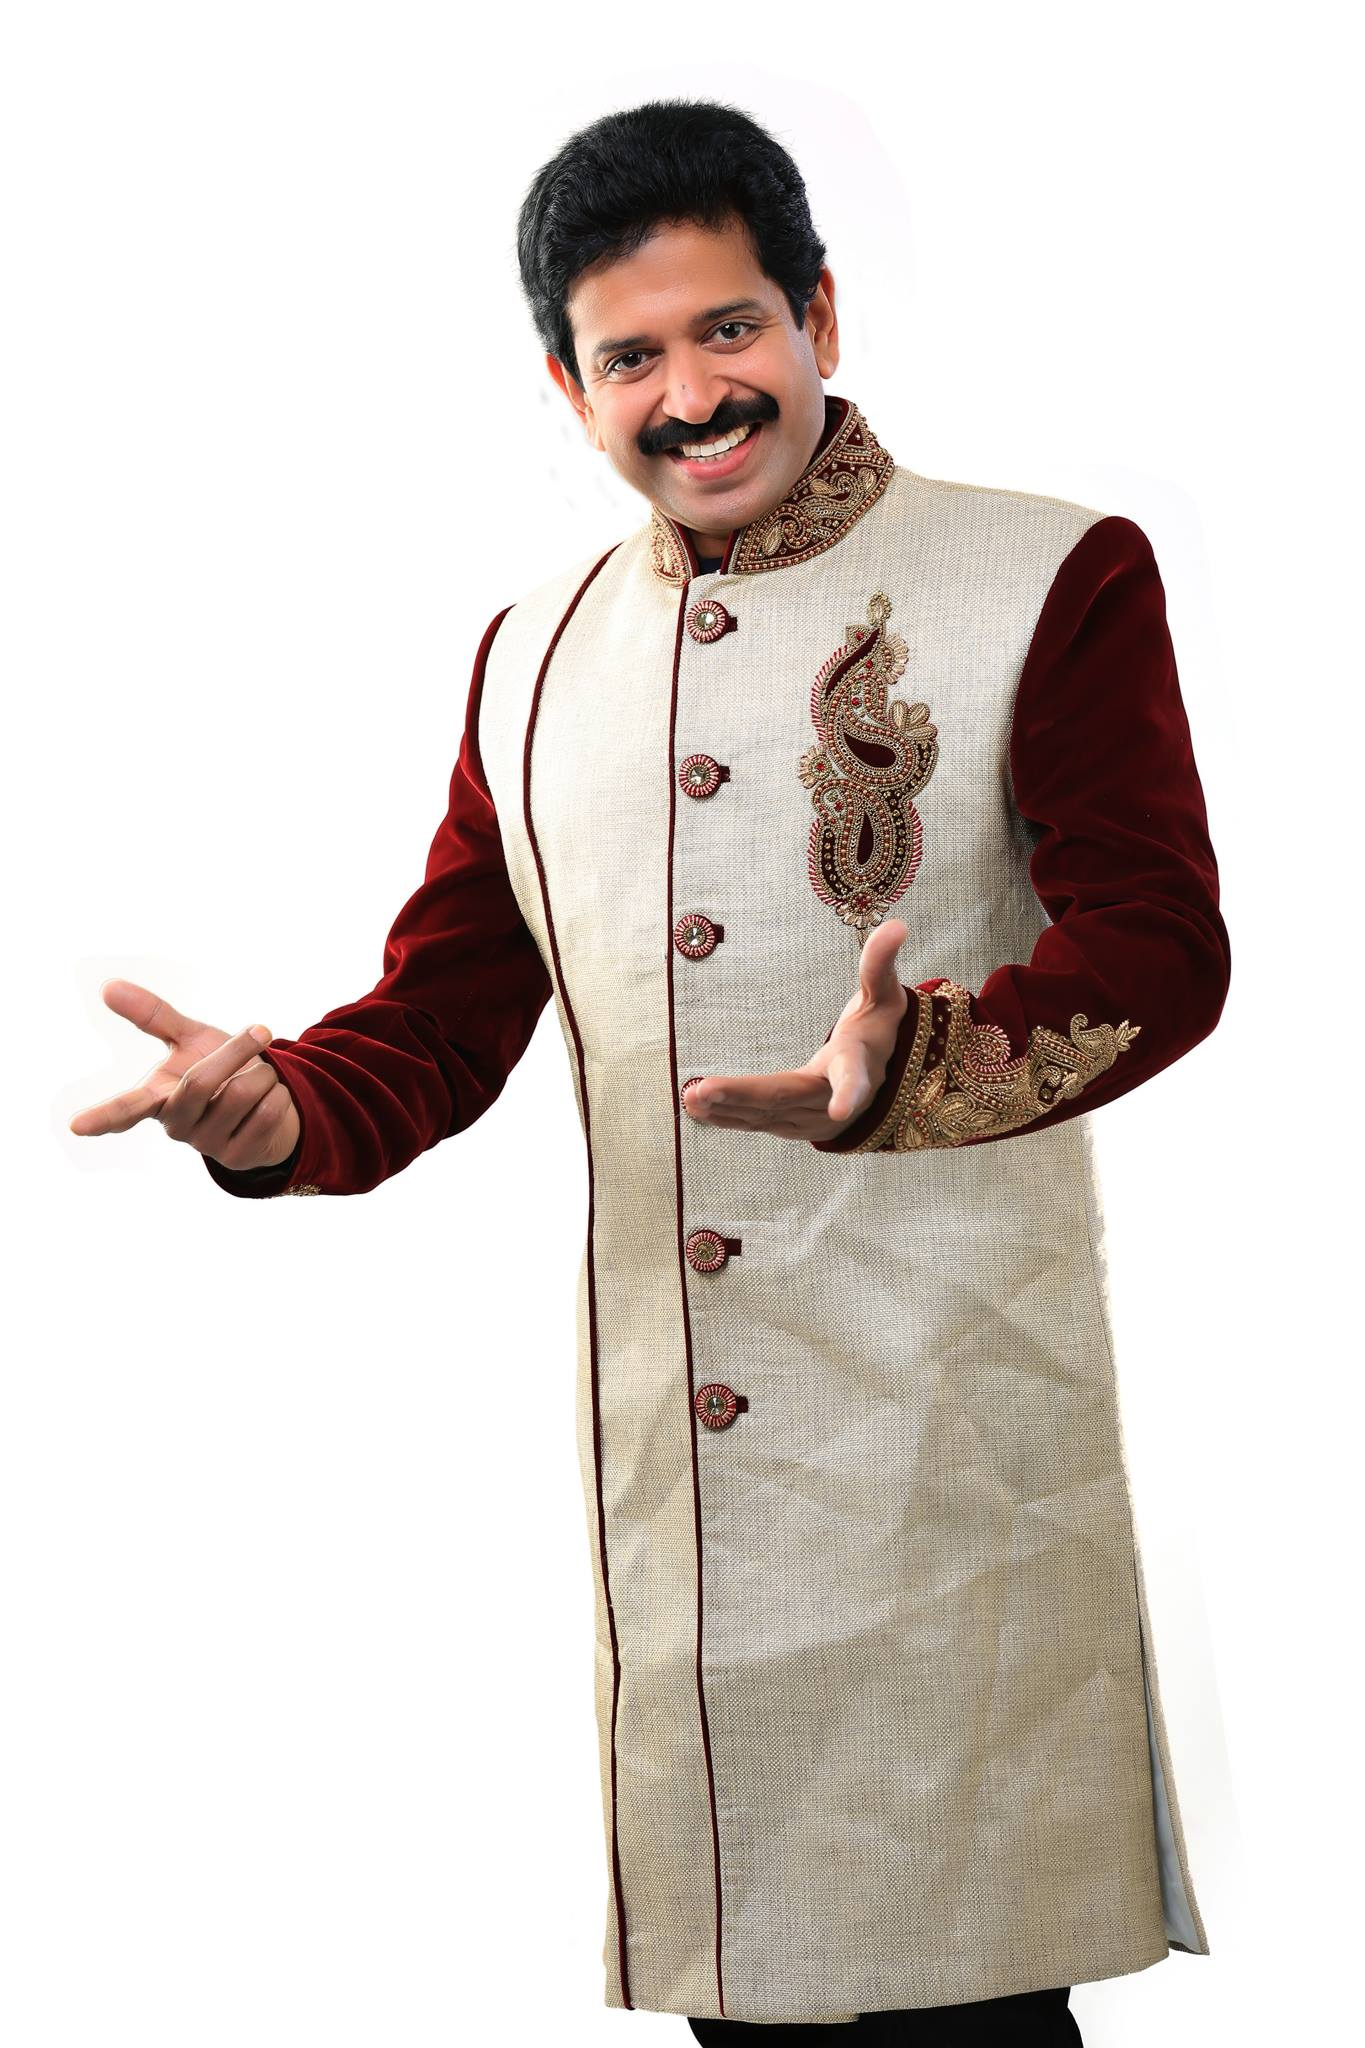 13220659 548677048647989 6765784298338713243 o Gopinath Muthukad - an Indian magician and motivational speaker.